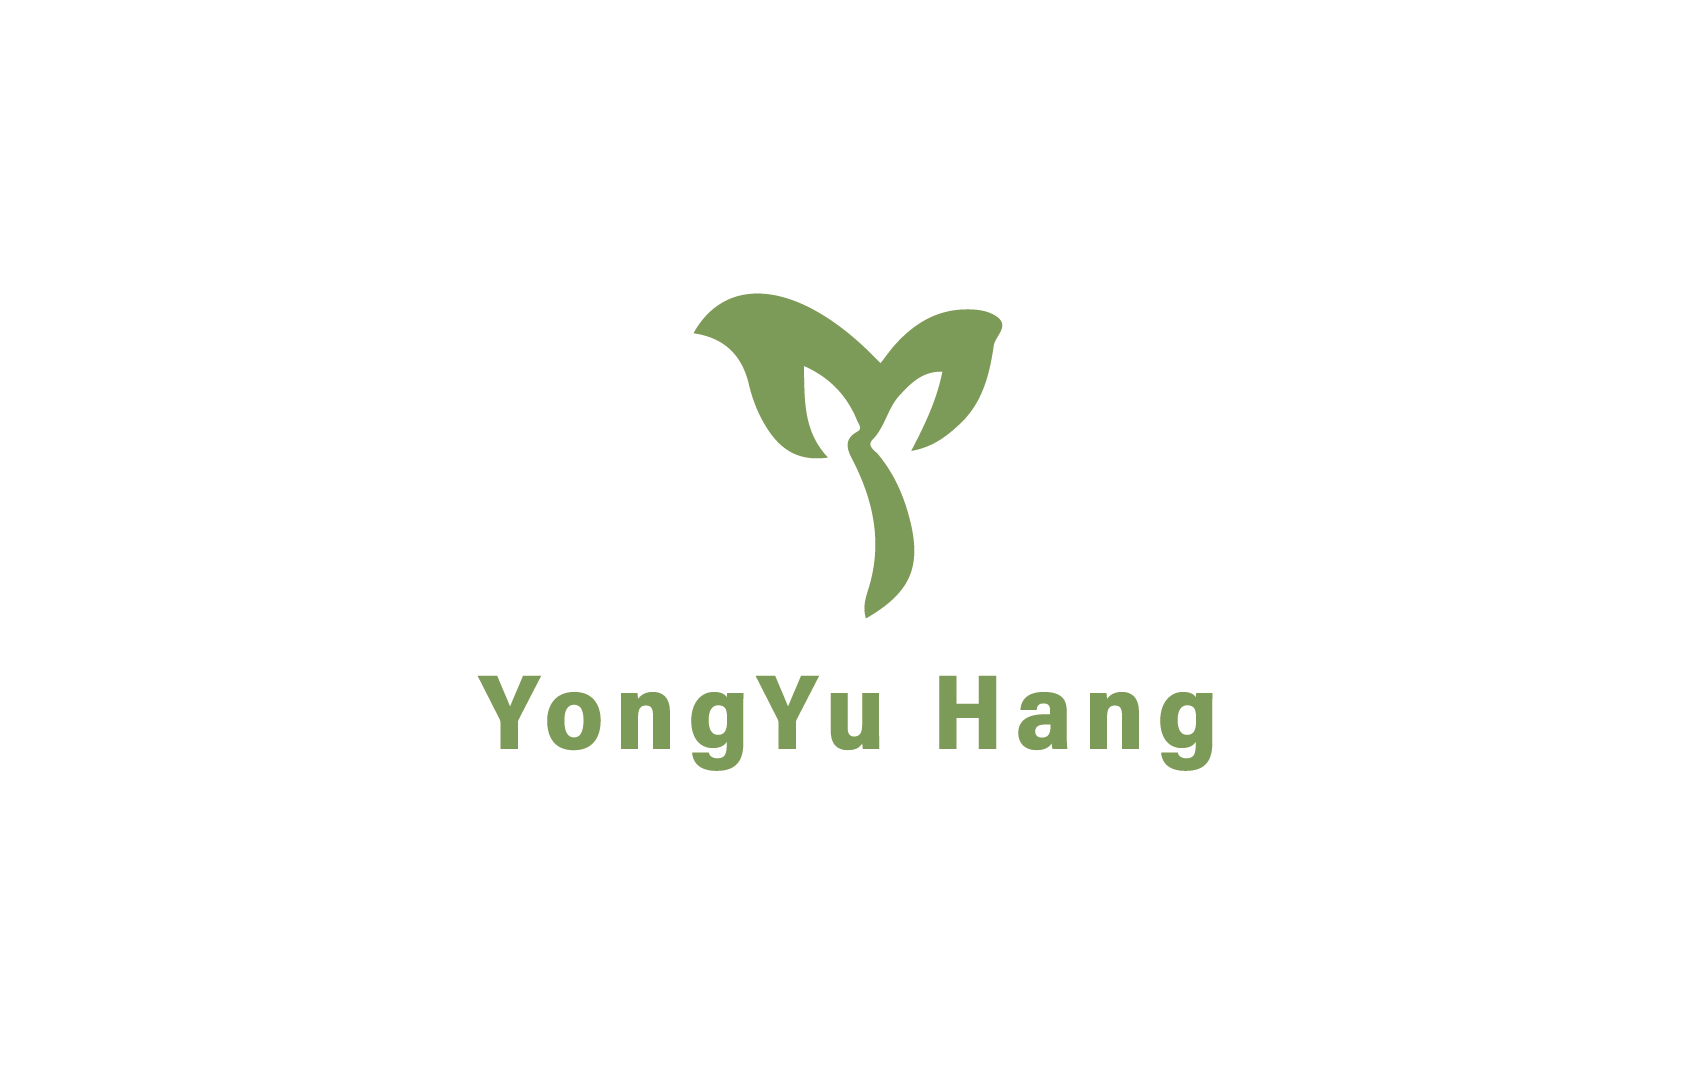 SHAANXI YONGYU HANG IMPORT & EXPORT TRADING CO.,LTD